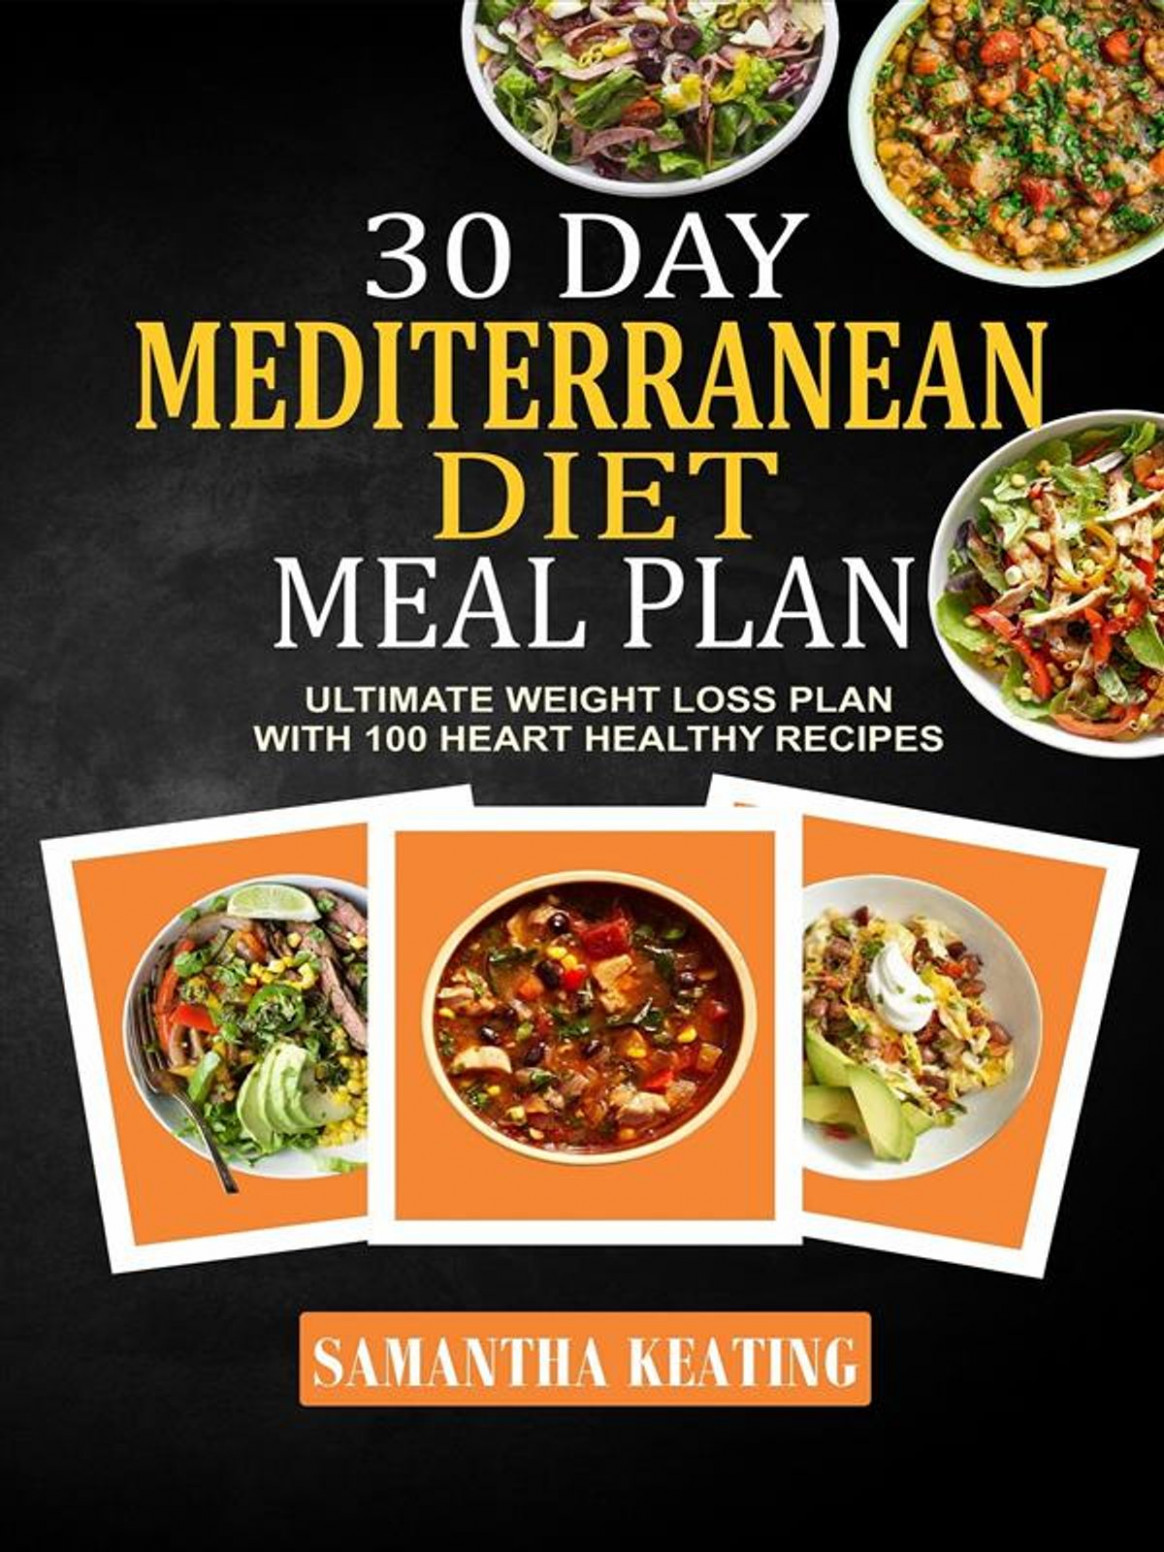 11 Day Mediterranean Diet Meal Plan: Ultimate Weight Loss Plan With 11  Heart Healthy Recipes Ebook By Samantha Keating - Rakuten Kobo - Healthy Recipes Good For The Heart